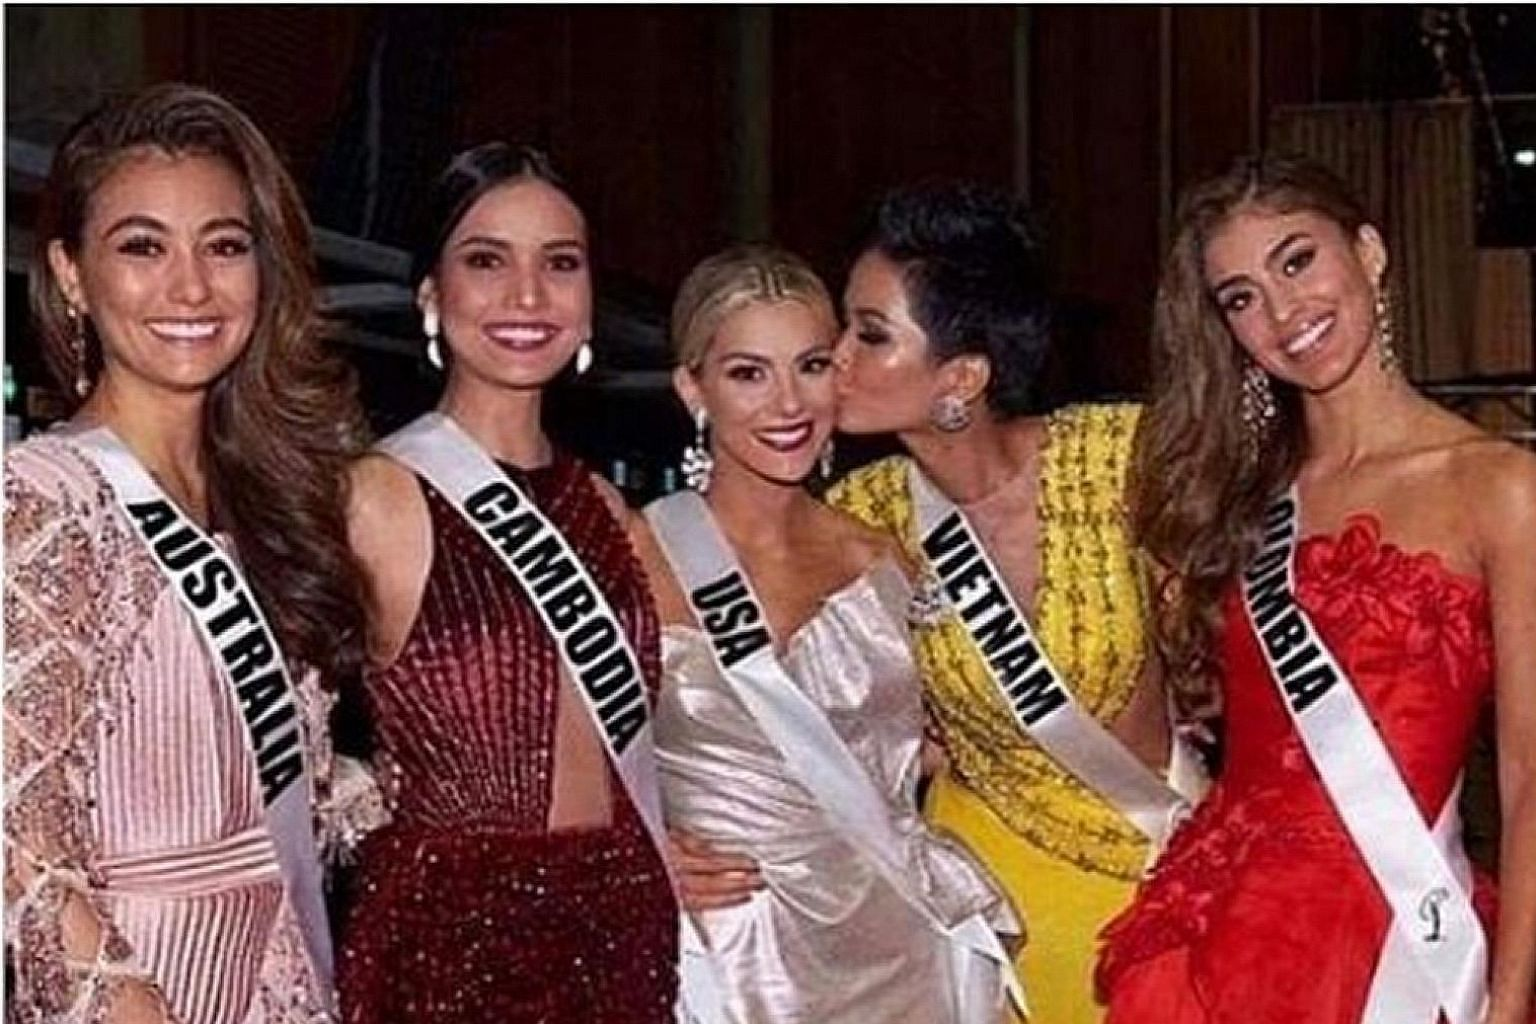 Miss USA Sarah Rose Summers in Bangkok with (from left) Miss Australia Francesca Hung, Miss Cambodia Nat Rern, Miss Vietnam H'Hen Nie and Miss Colombia Valeria Morales.